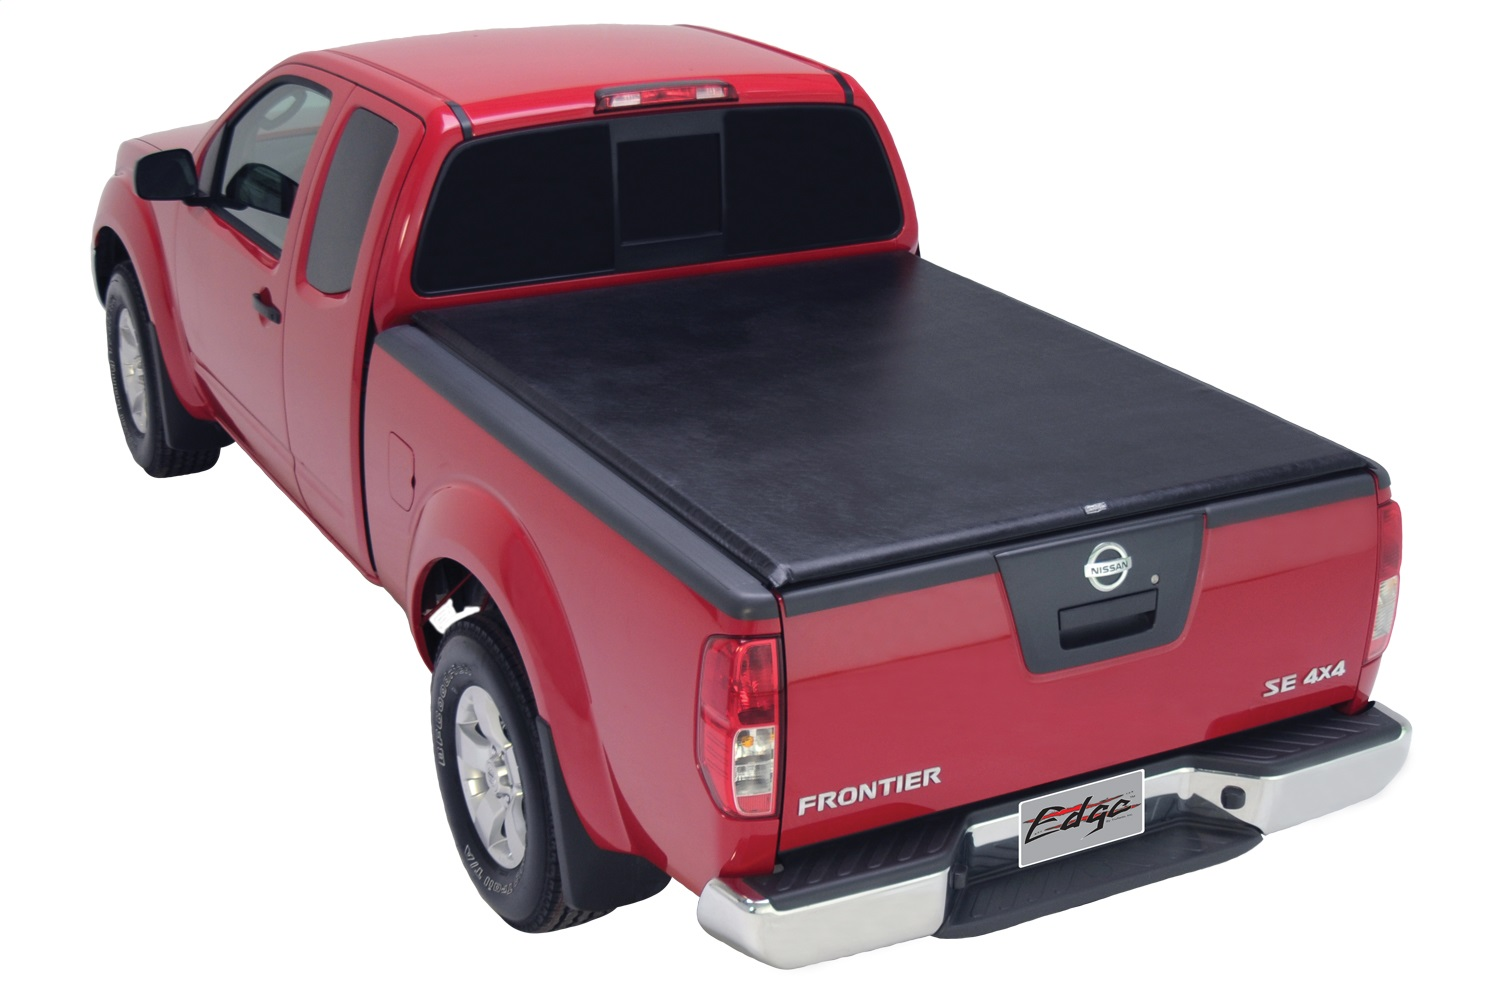 Truxedo (Shur-co) Tonneau Cover (897101)